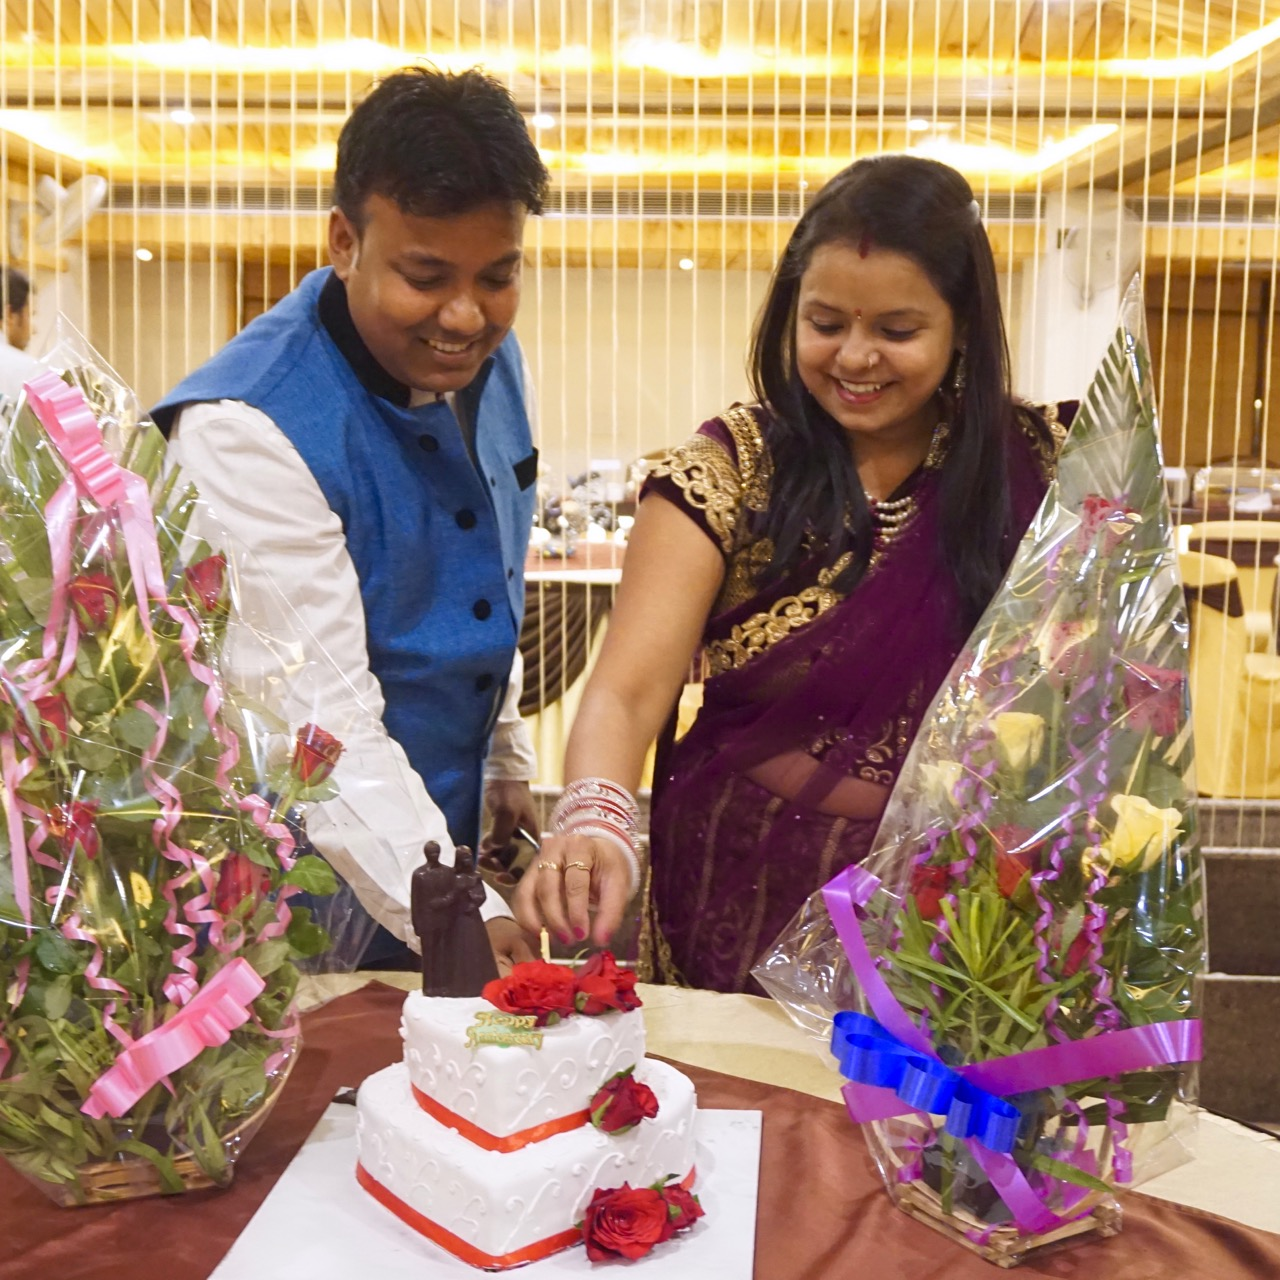 Nandan and his wife dissecting their anniversary cake.